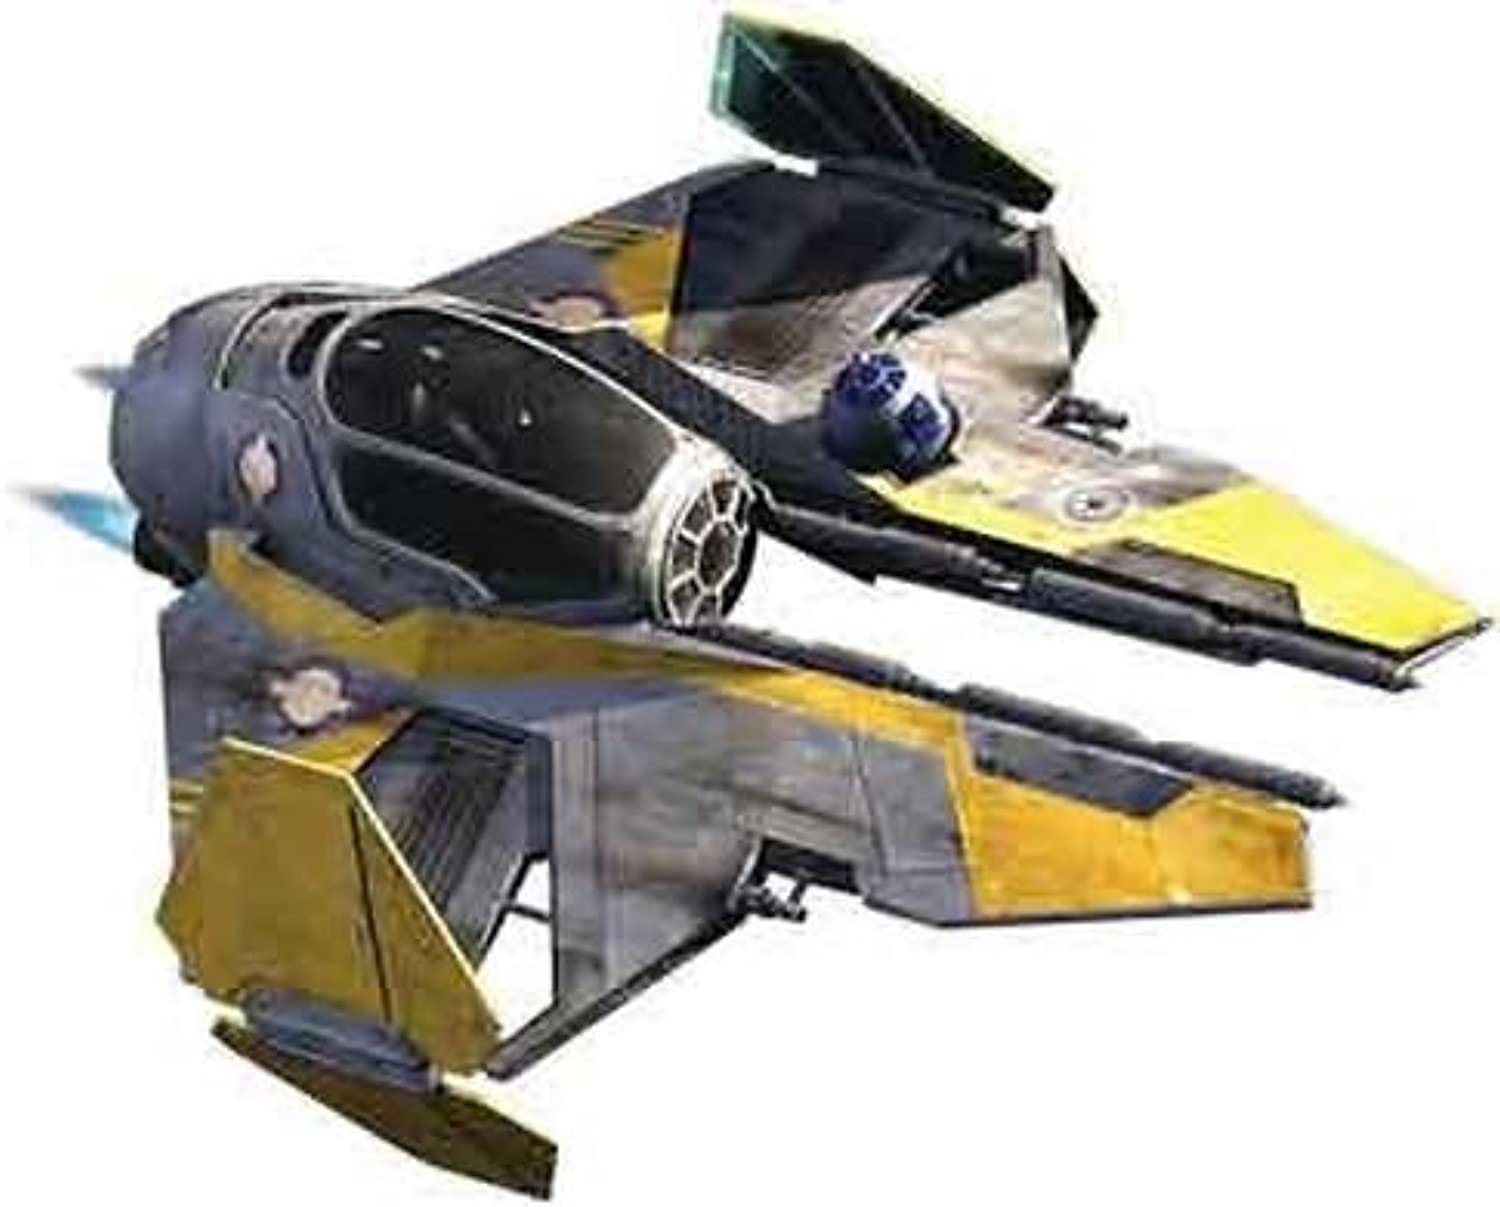 AMT  Star Wars Revenge of the Sith Anakin's Jedi Star Fighter